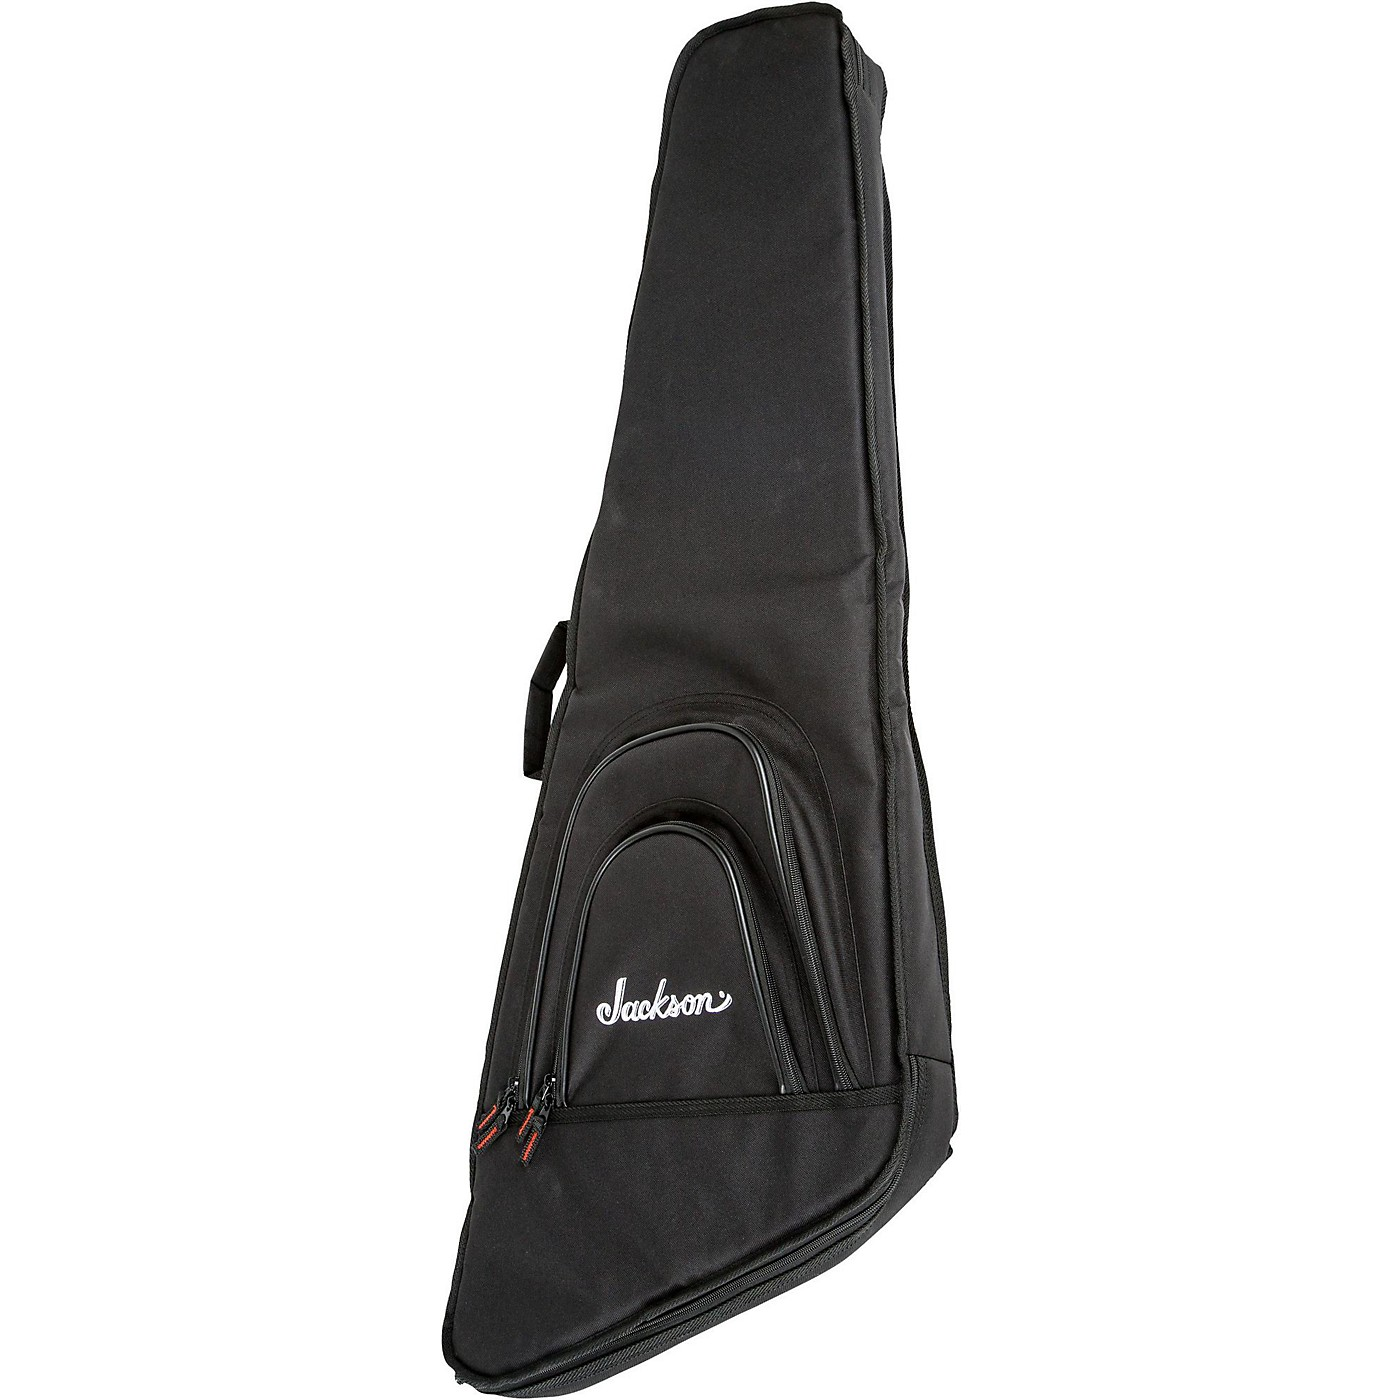 Jackson Rhoads Minion Electric Guitar Gig Bag thumbnail